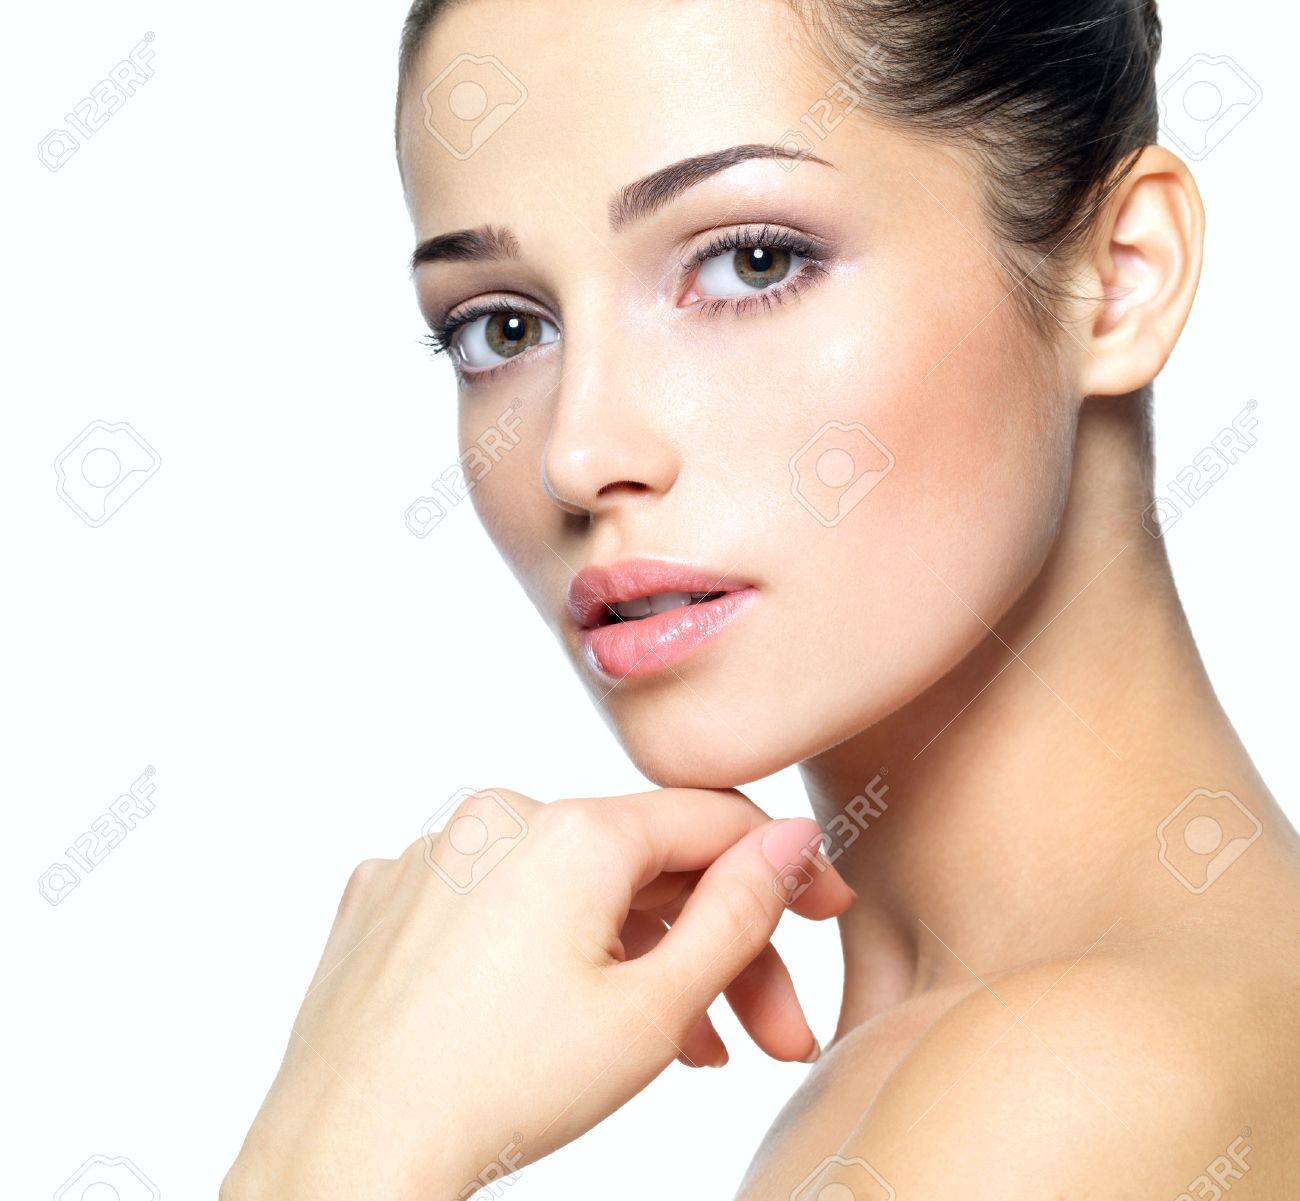 Beauty face of young woman. Skin care concept. Closeup portrait isolated on white. Stock Photo - 22359246